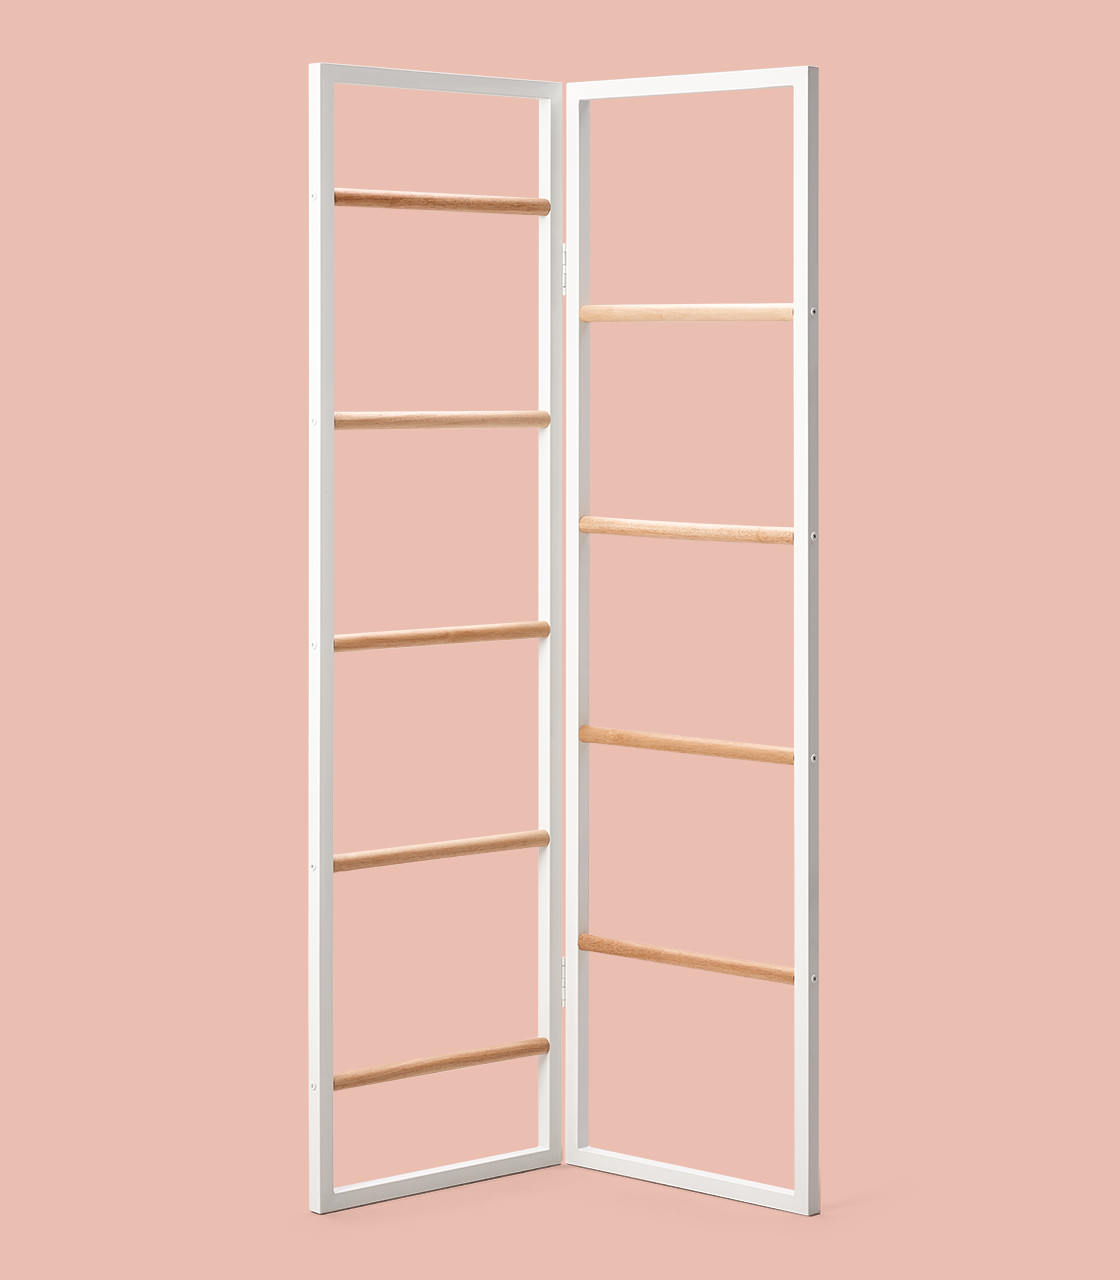 Versa — Garment Ladder